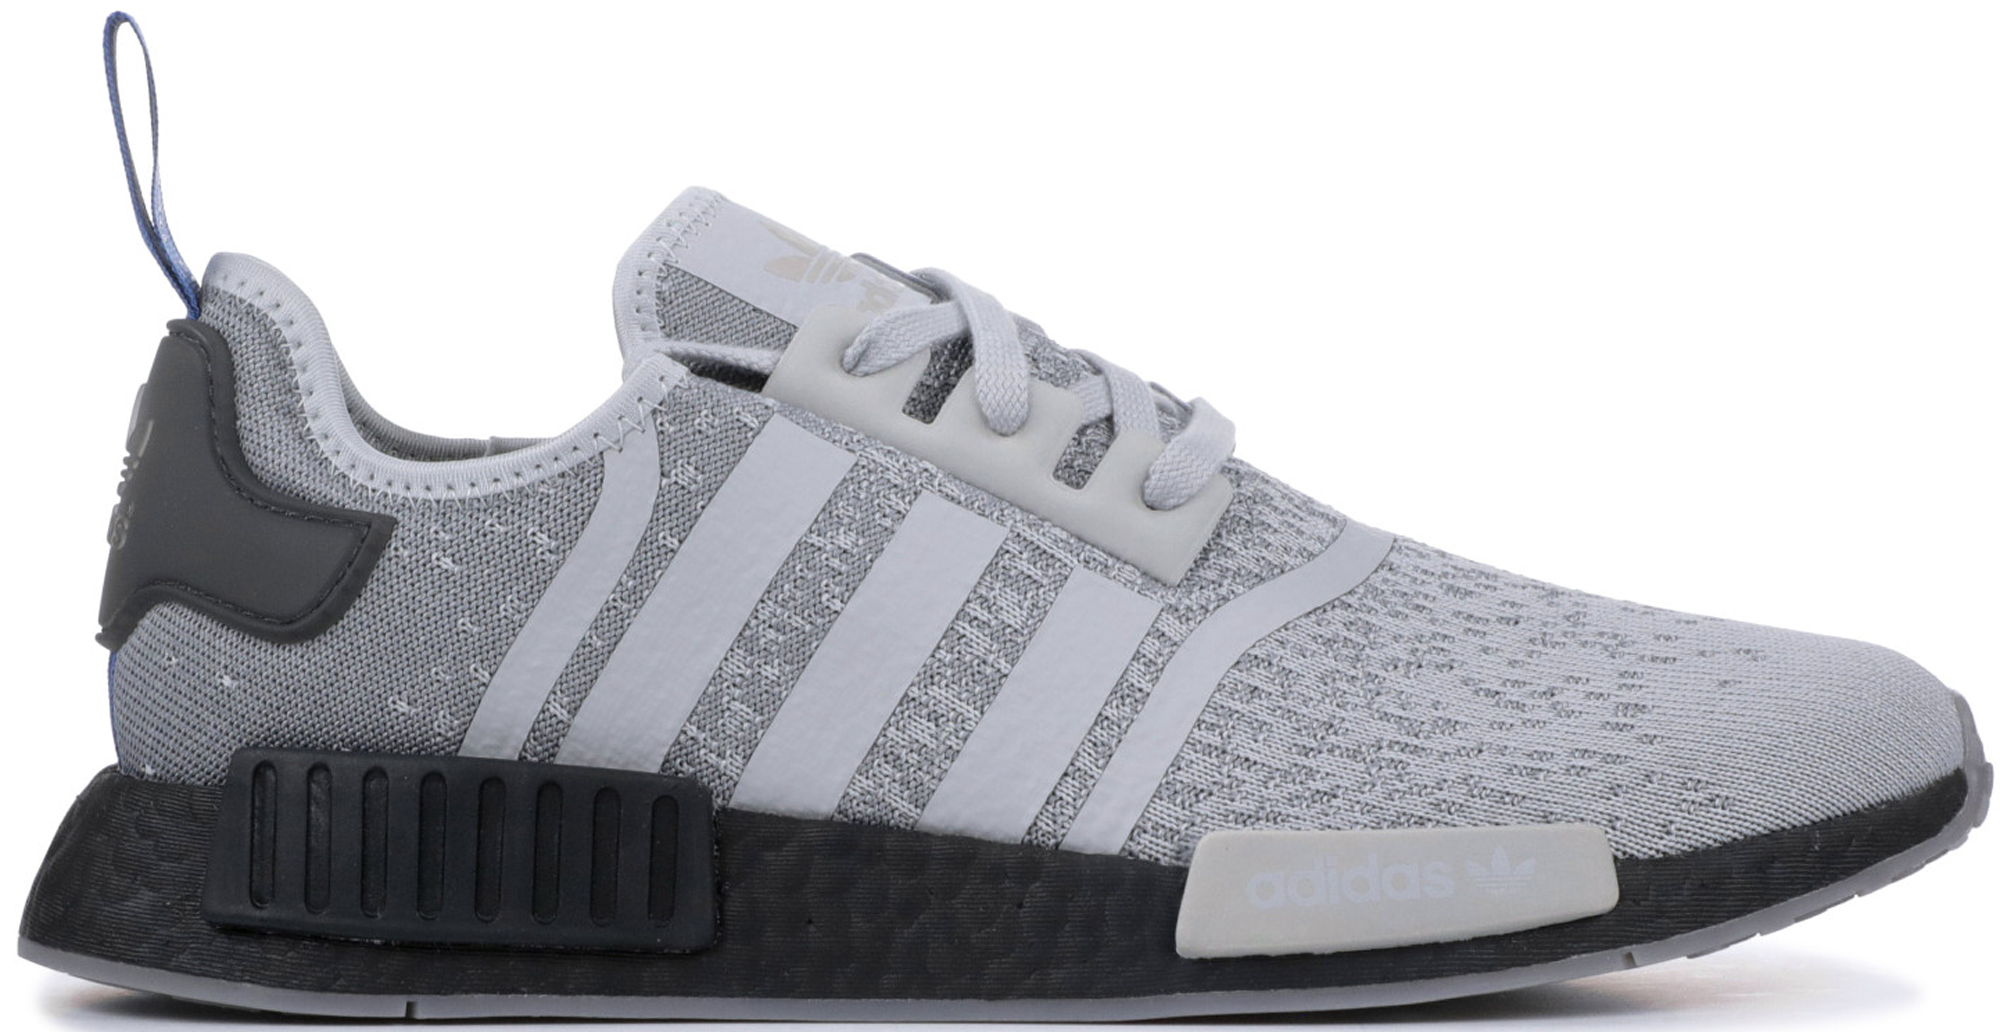 """Outlet Best Adidas NMD R1 PK """"JD Sports"""" GreyWhite"""